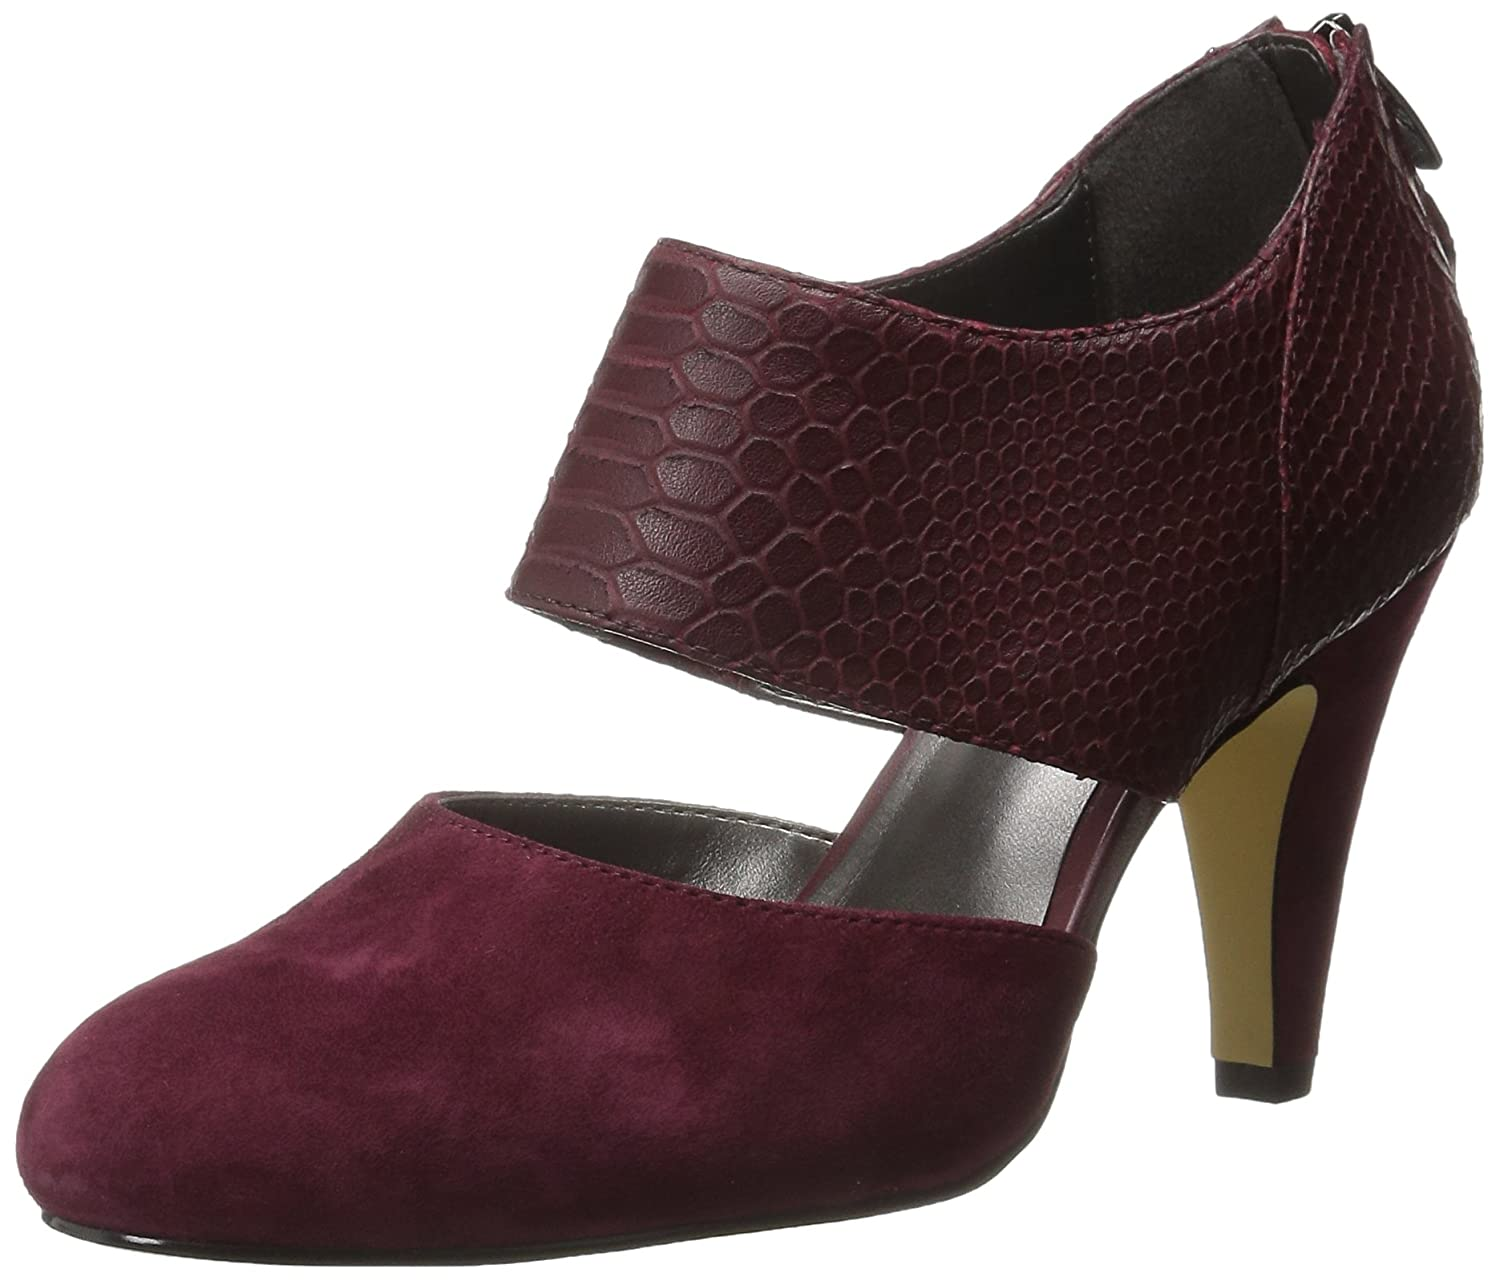 Bella Vita Women's Neola Dress Pump B00U7ZSR44 6 W US|Burgundy Crocodile